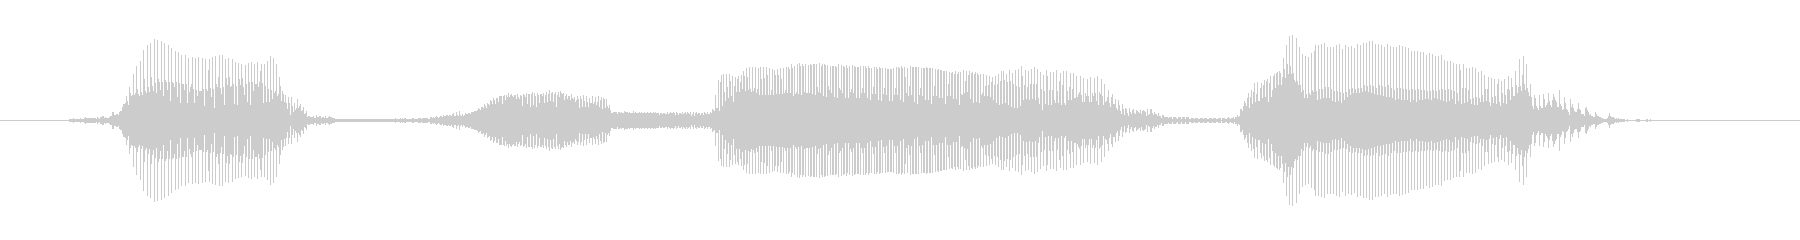 """6-year-old girl """"Hatsumode""""-03's unreproduced waveform"""